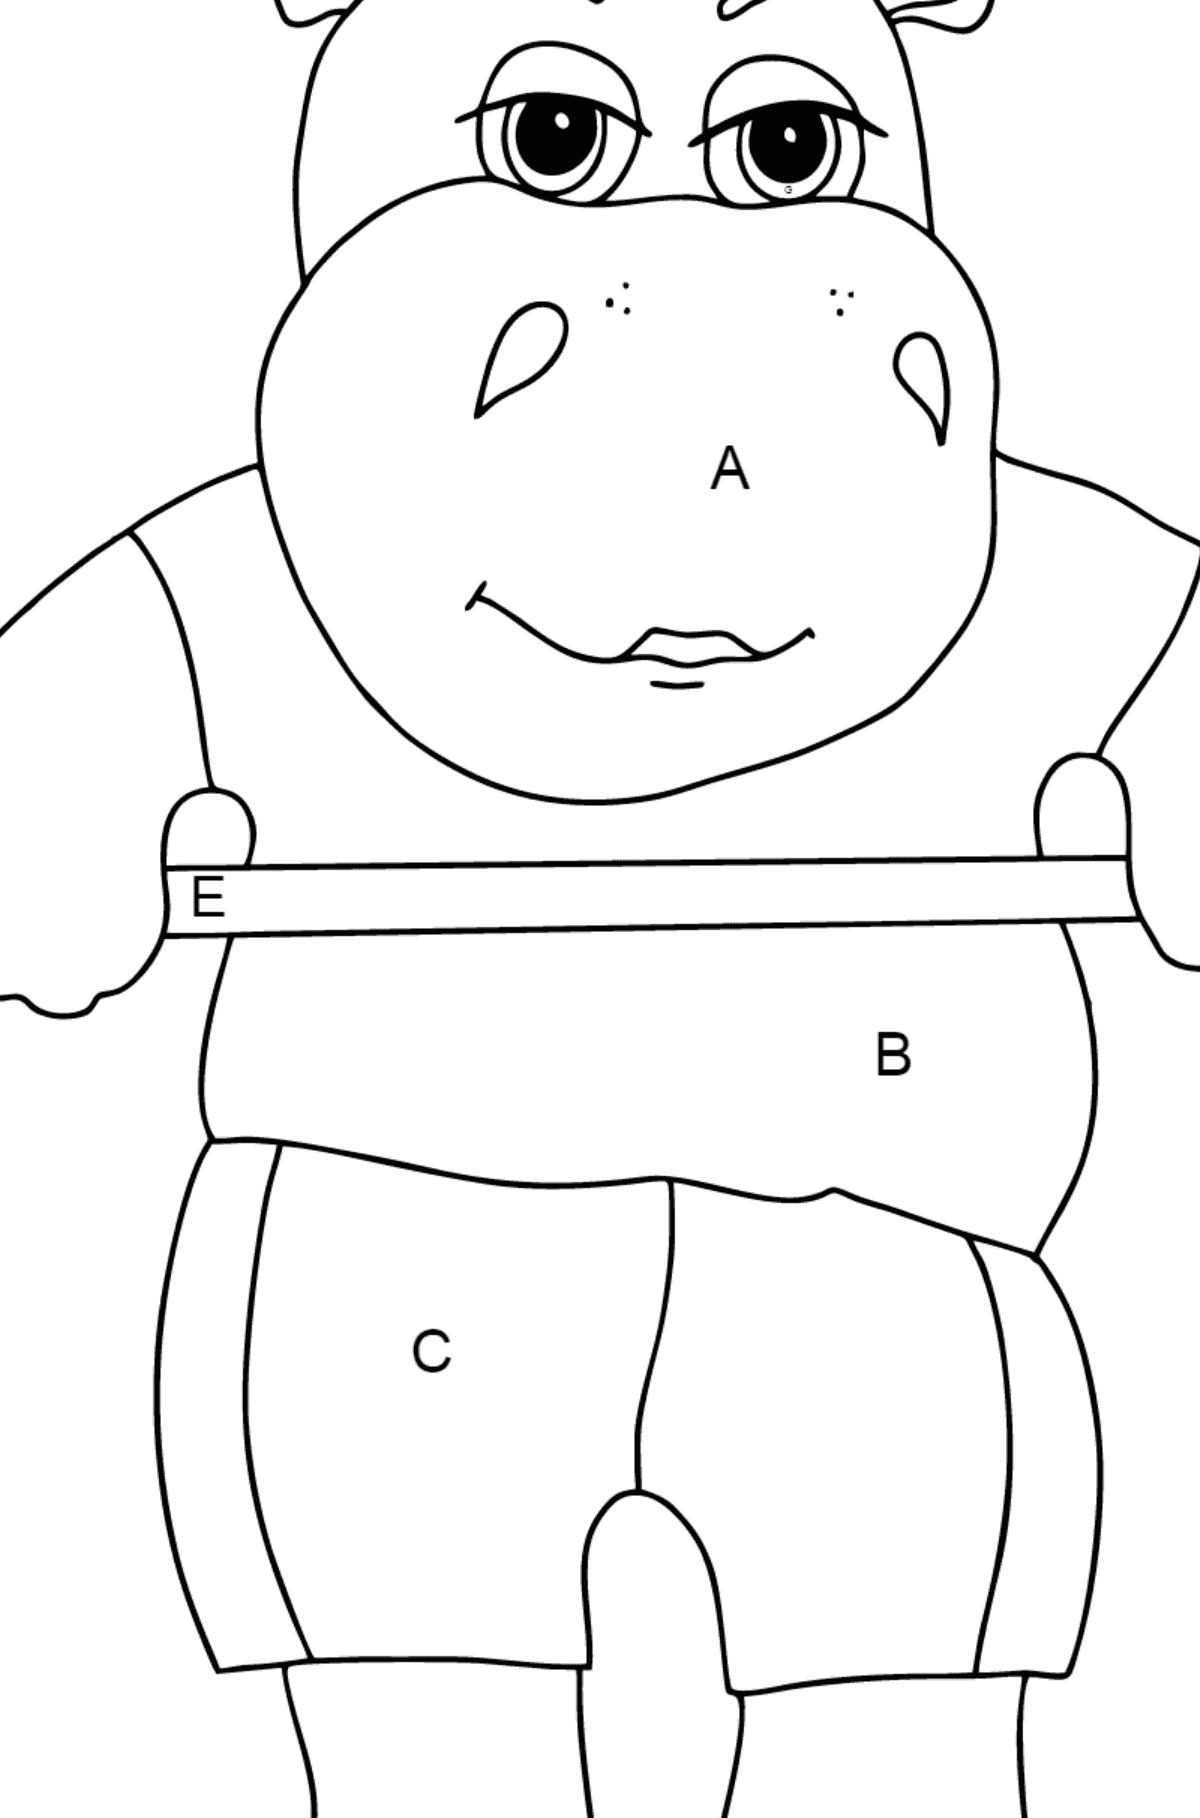 Coloring Page - A Hippo with a Barbell for Kids  - Color by Letters